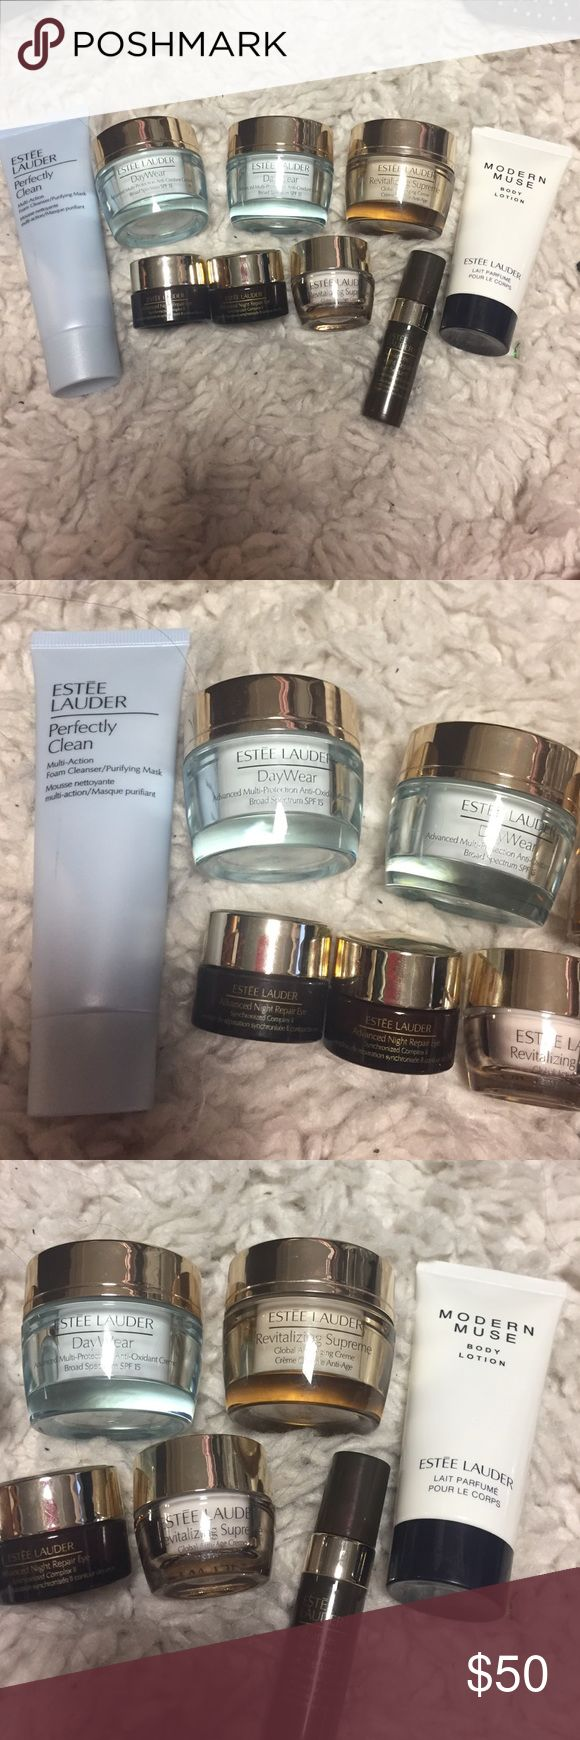 HUGE ESTÉE LAUDER SALE!!! BRAND NEW Estée Lauder day wear, anti aging, night repair eye cream, cleanser, and lotion SALE ALL FULL SIZE Estee Lauder Makeup